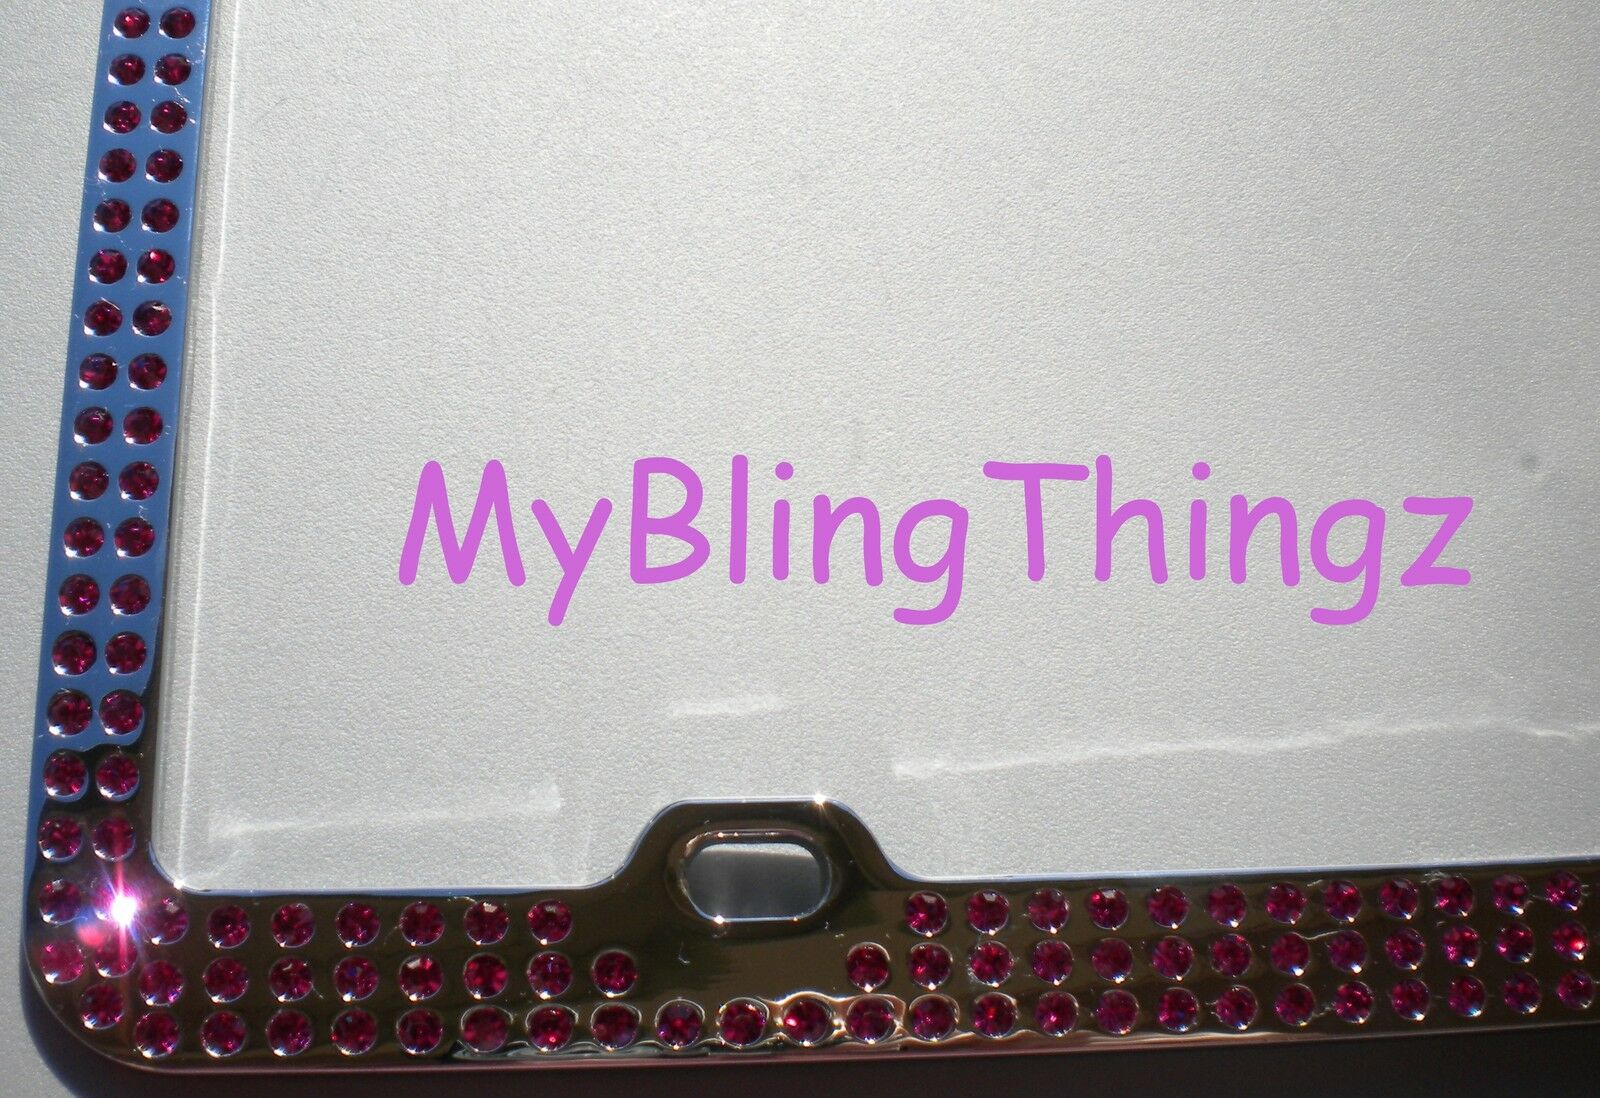 EMBEDDED HOT PINK Crystal Rhinestone License Plate Frame with ...